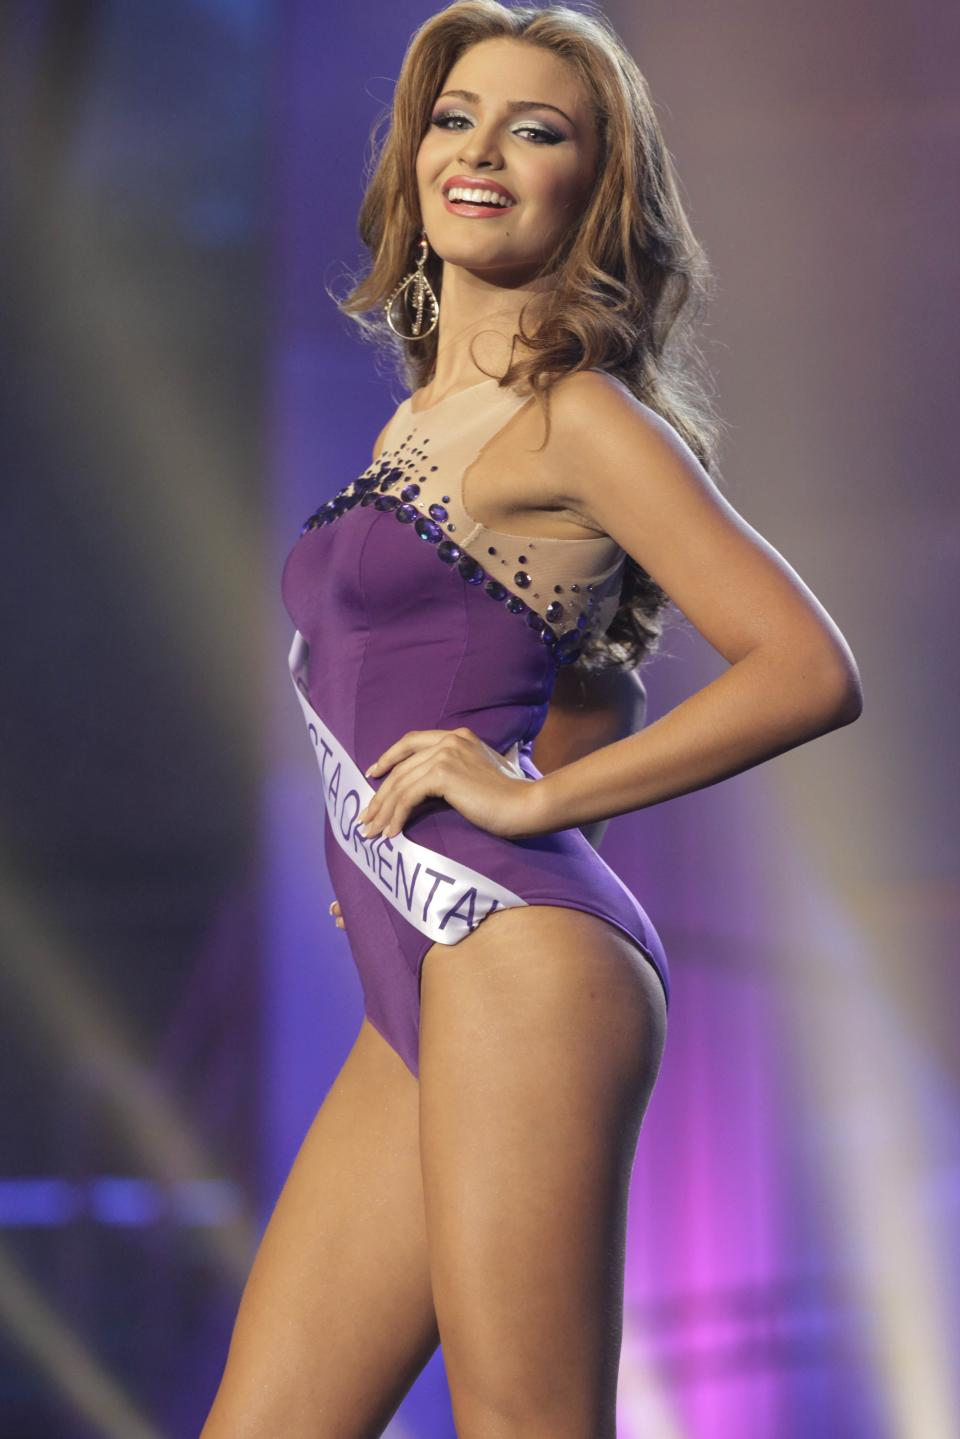 Miss Costa Oriente, Migbelis Castellanos poses during the Miss Venezuela 2013 beauty pageant in Caracas, Venezuela, Thursday, Oct. 10, 2013. (AP Photo/Ariana Cubillos)